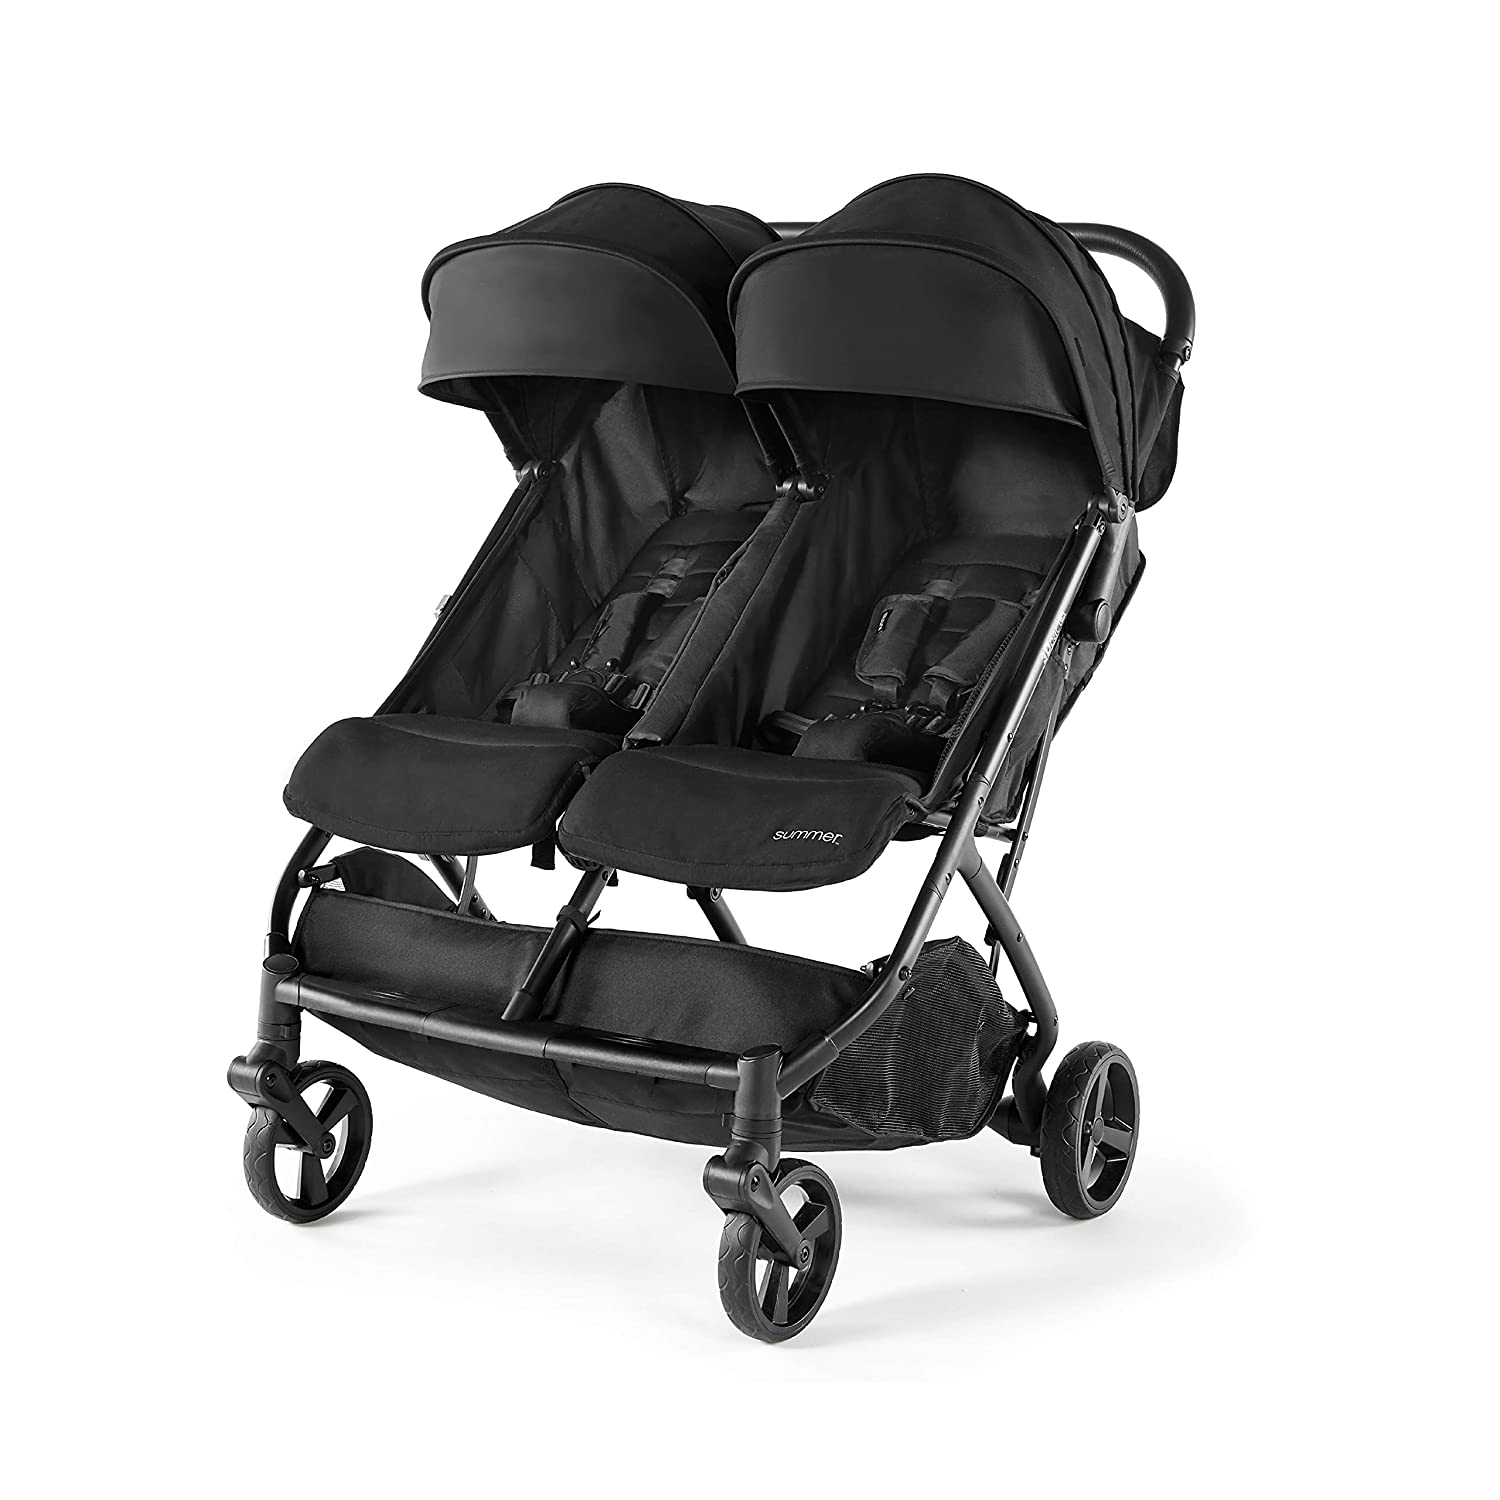 Graco Duoglider Double Stroller Car Seat Compatibility ...